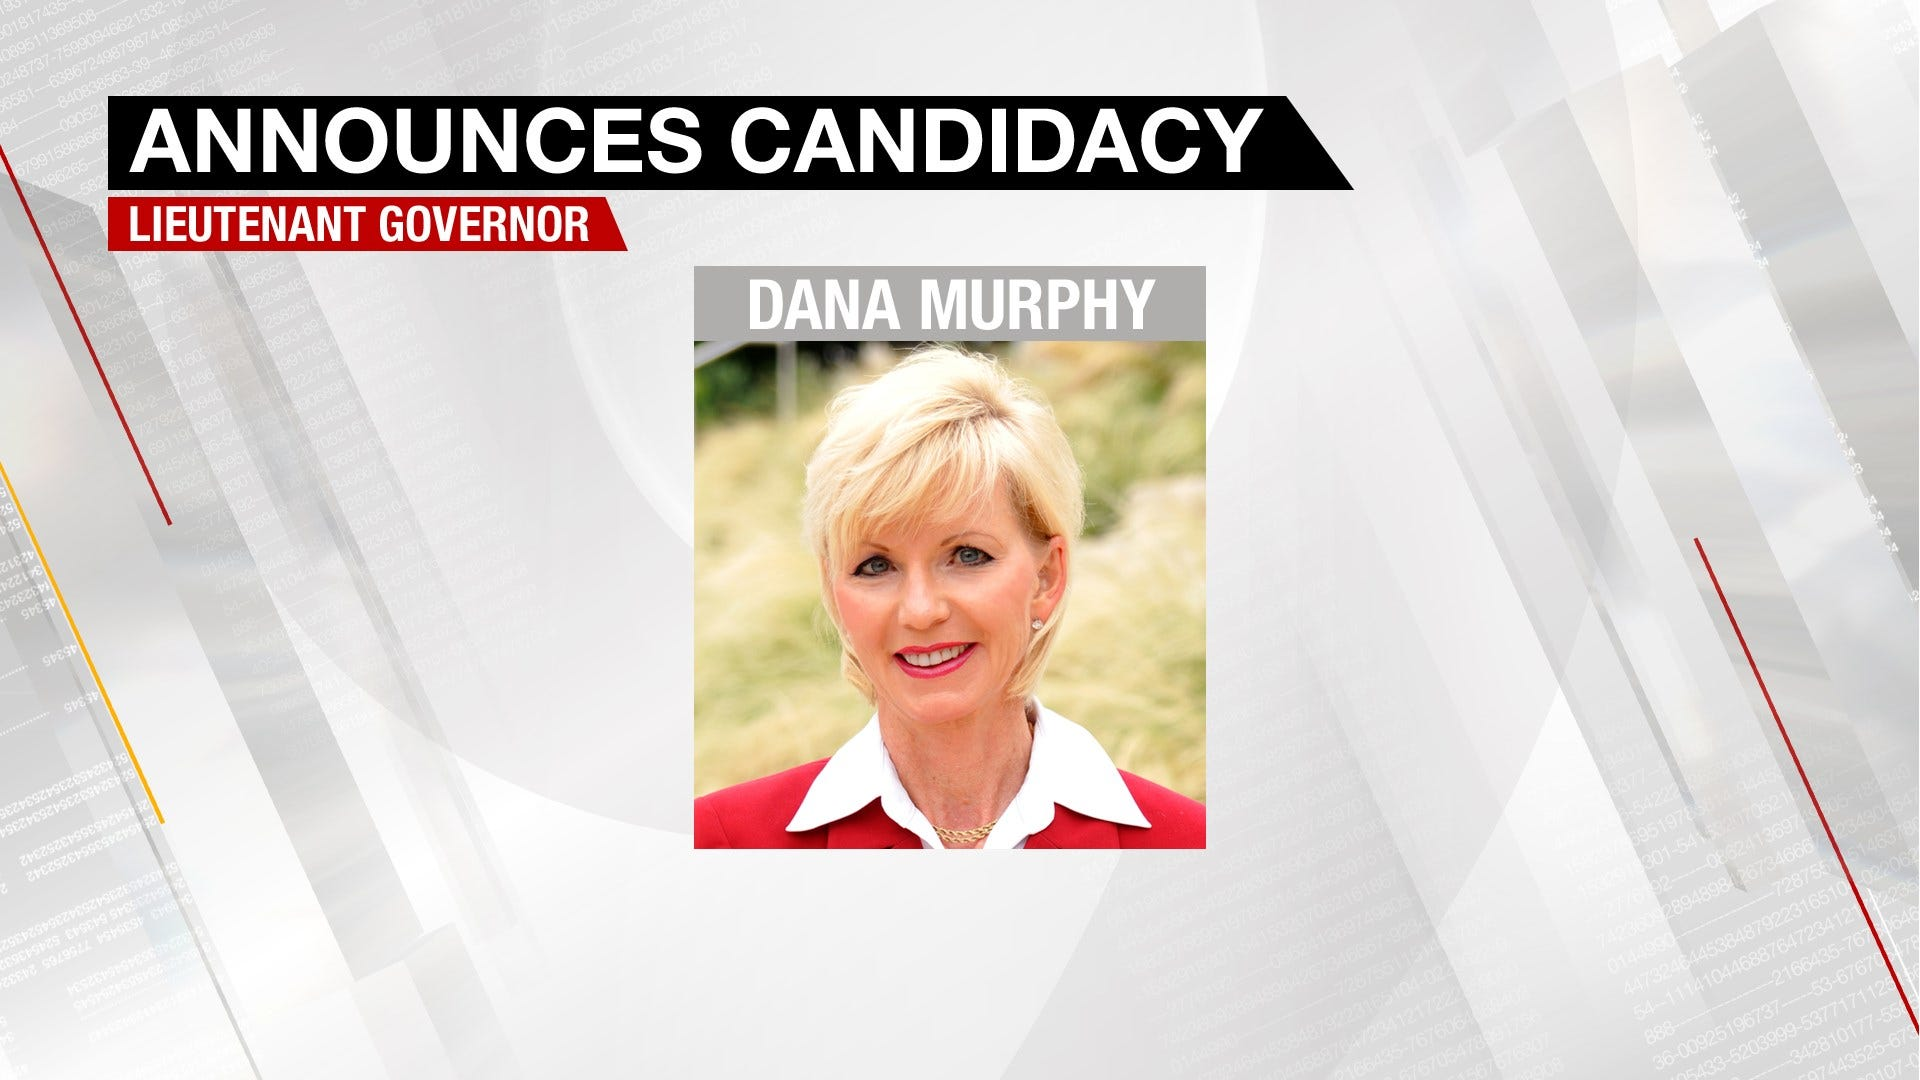 Dana Murphy Announces Candidacy For Lt. Governor